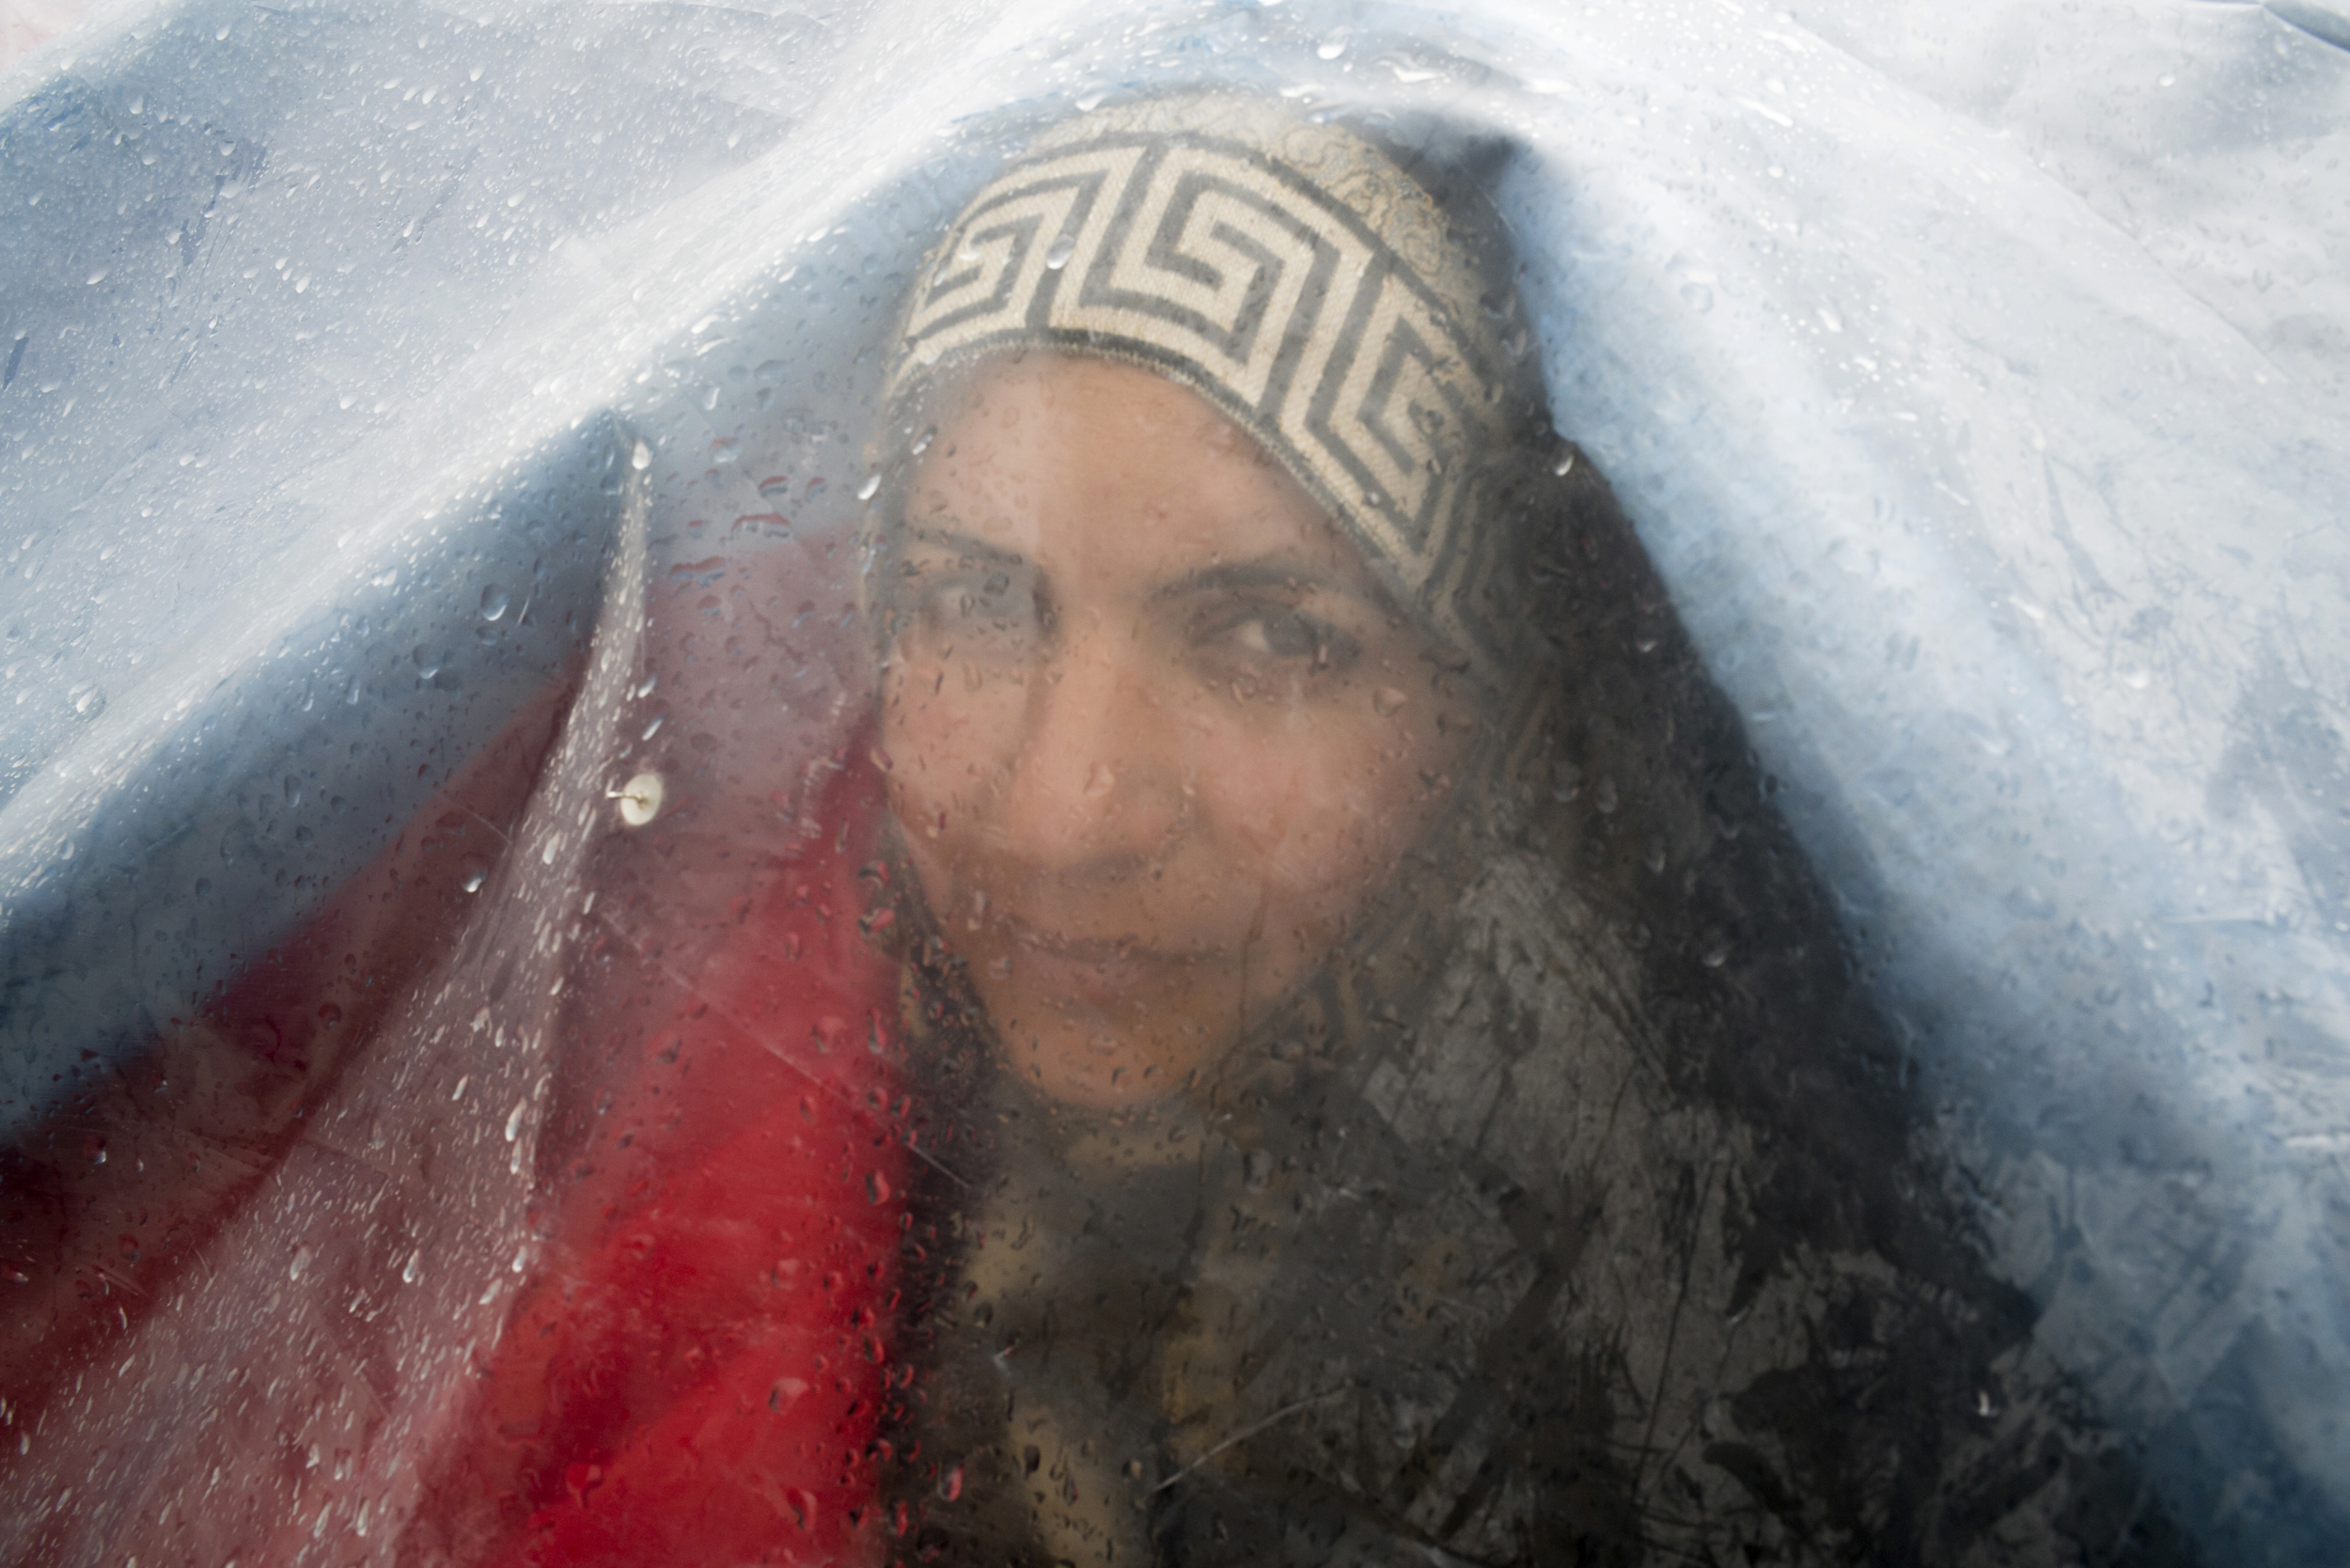 OLGA STEFATOU |  www.olgastefatou.com  |  @olga_stefatou   A Syrian woman on day 8 of a hunger strike Syntagma square. About 100 Syrian refugees protested in front of the German Embassy on November 8, 2017. Most have been waiting for more than a year to reunite with their families in Germany.